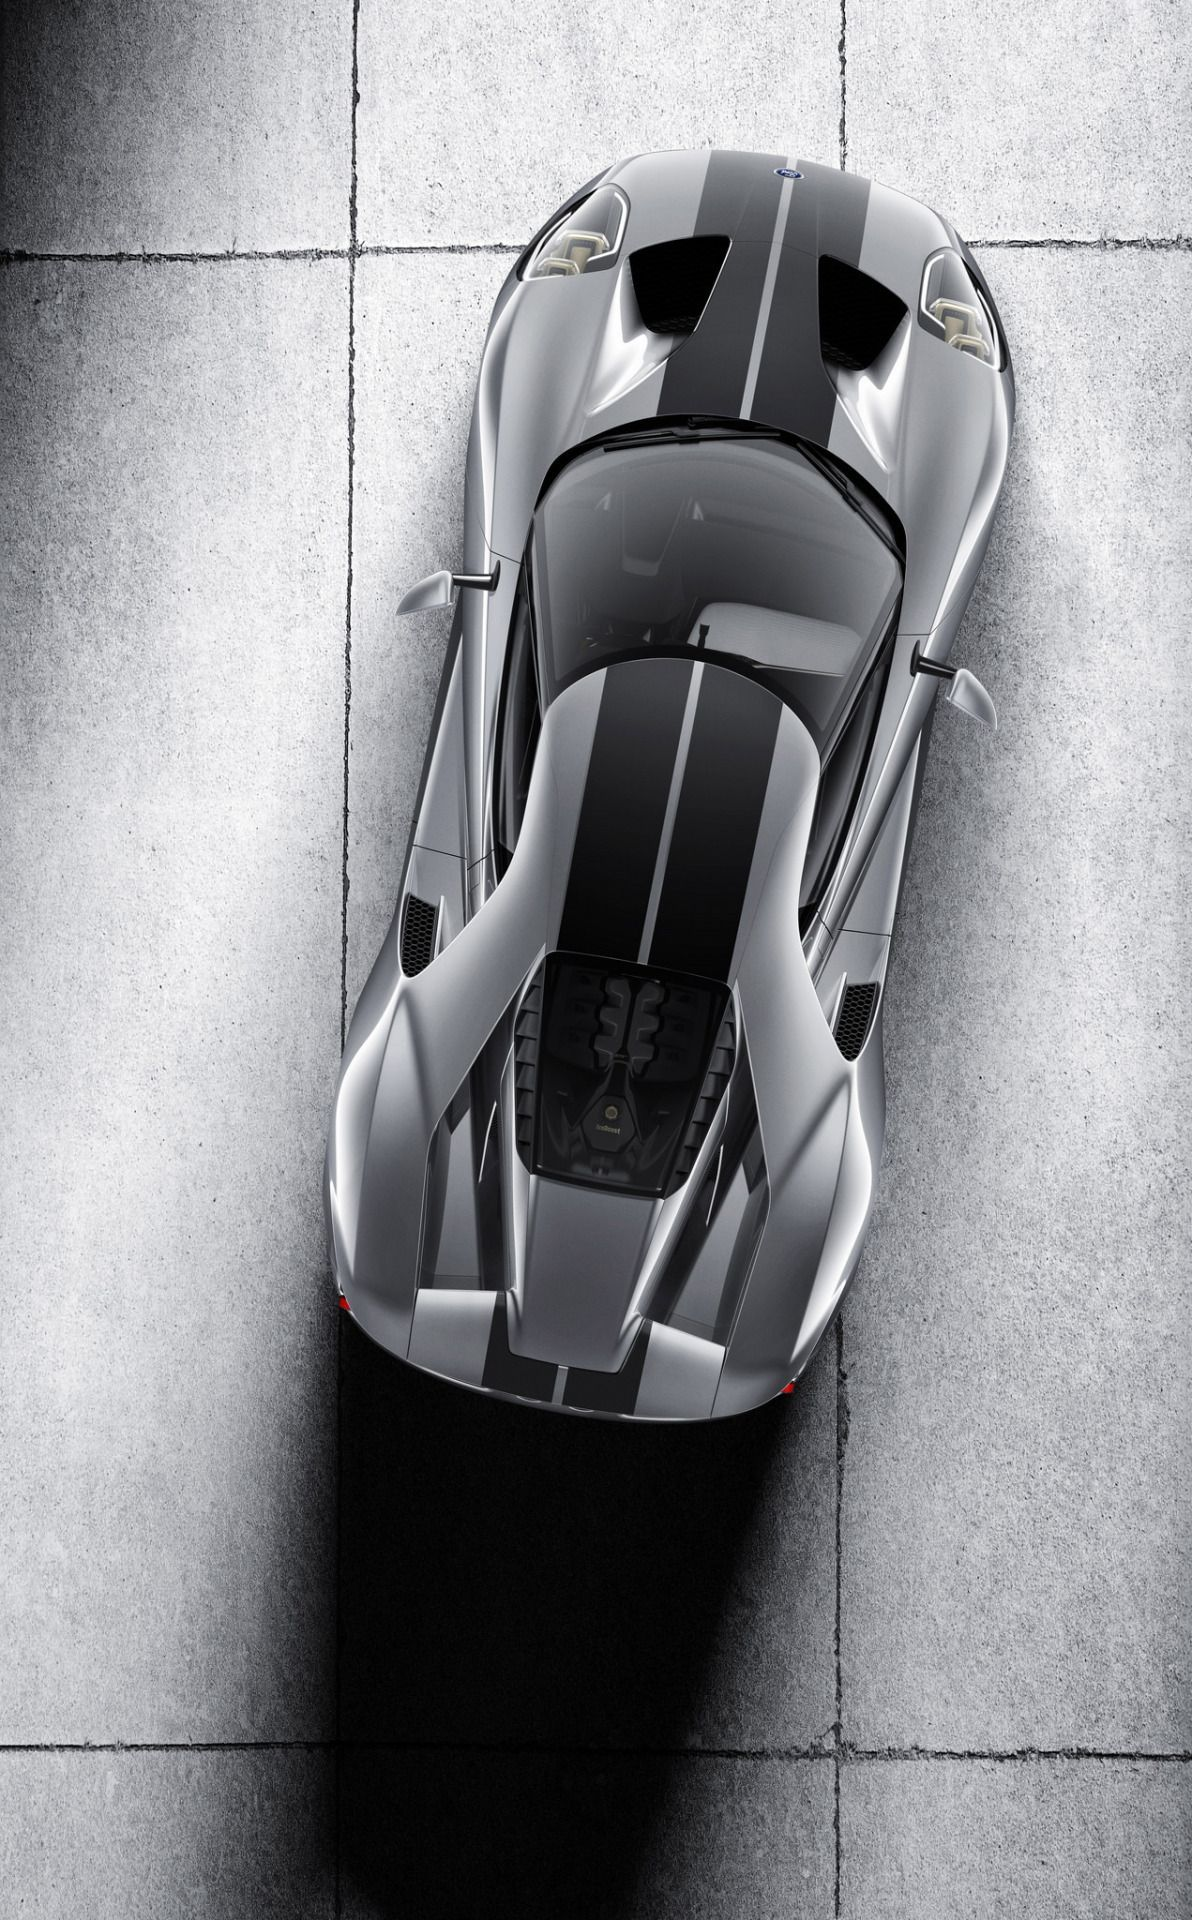 The All New Ford Gt Supercar In Liquid Silver Ford Gt Supercars Cars Automotive Ford Gt Cool Sports Cars Super Cars